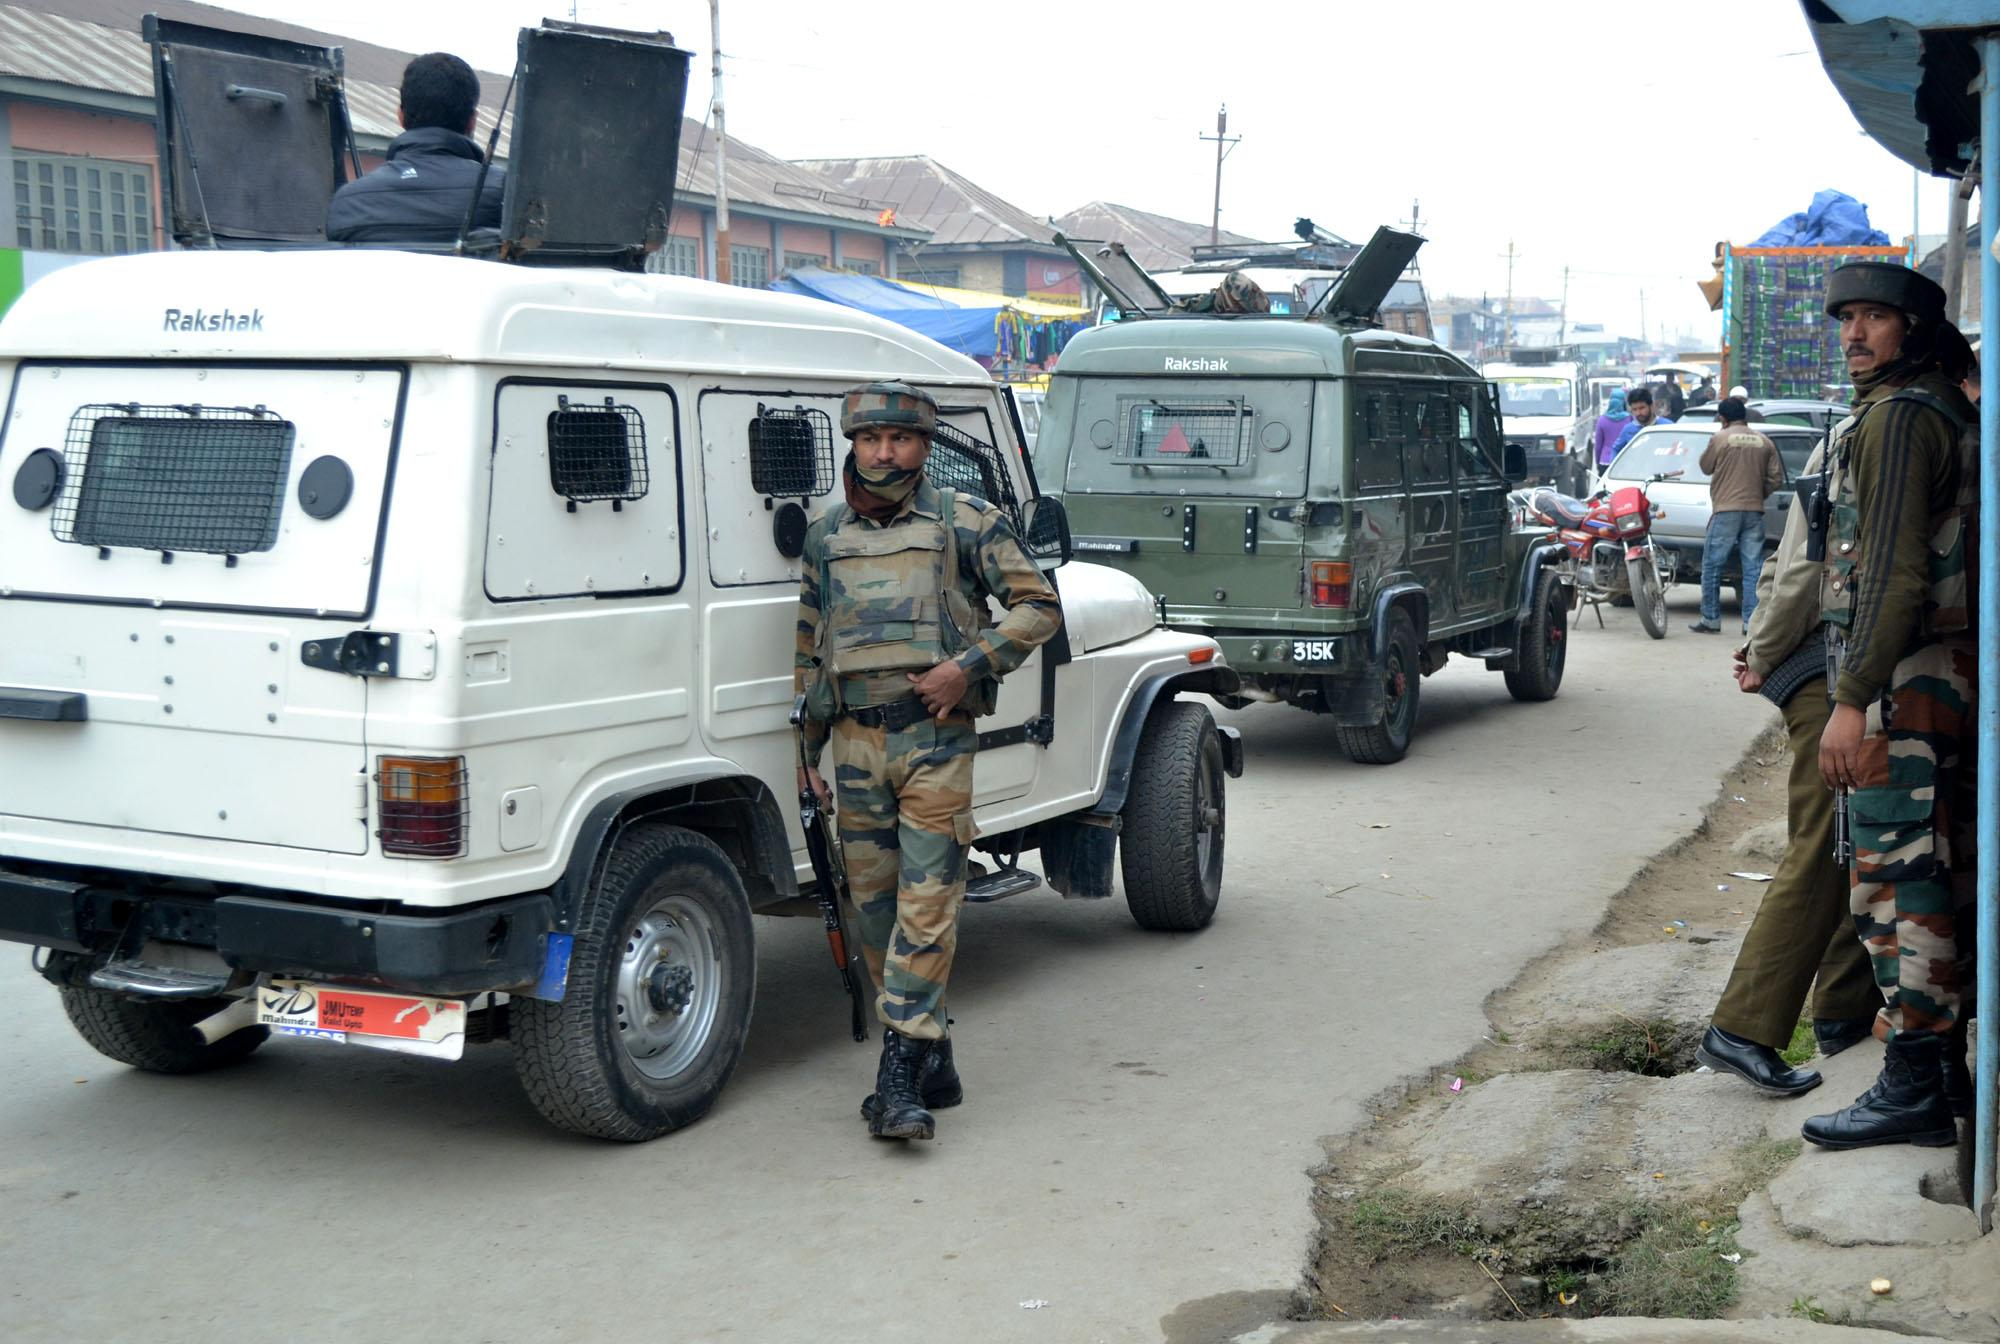 India has become 'synonymous with a military bunker or a police vehicle'. Photo credit: IANS